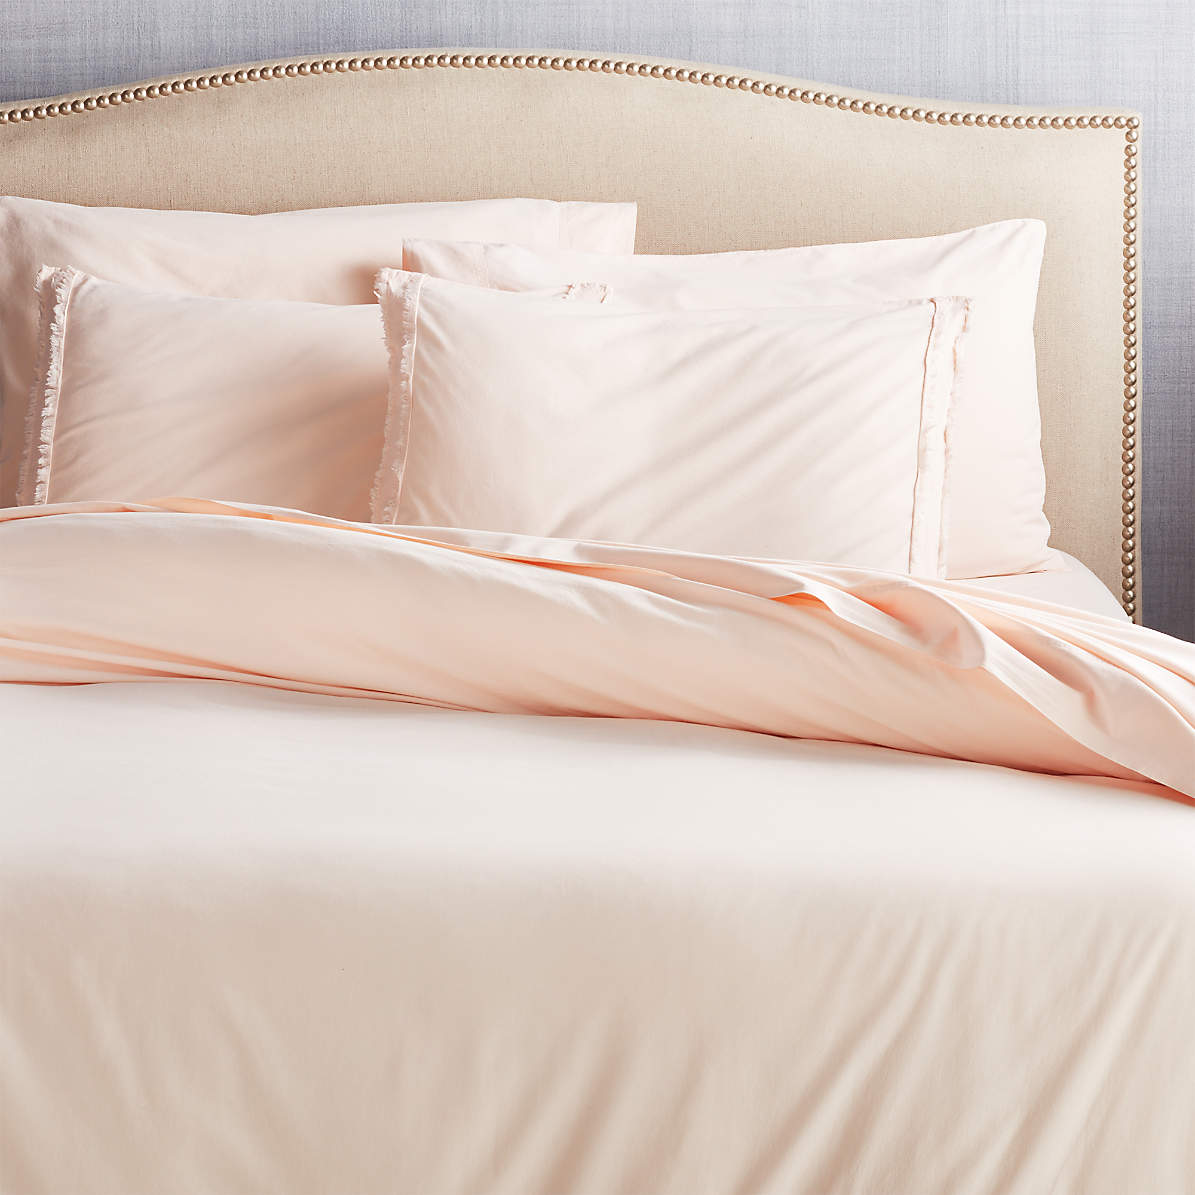 Washed Organic Cotton Blush Duvet Cover And Pillow Shams Crate And Barrel